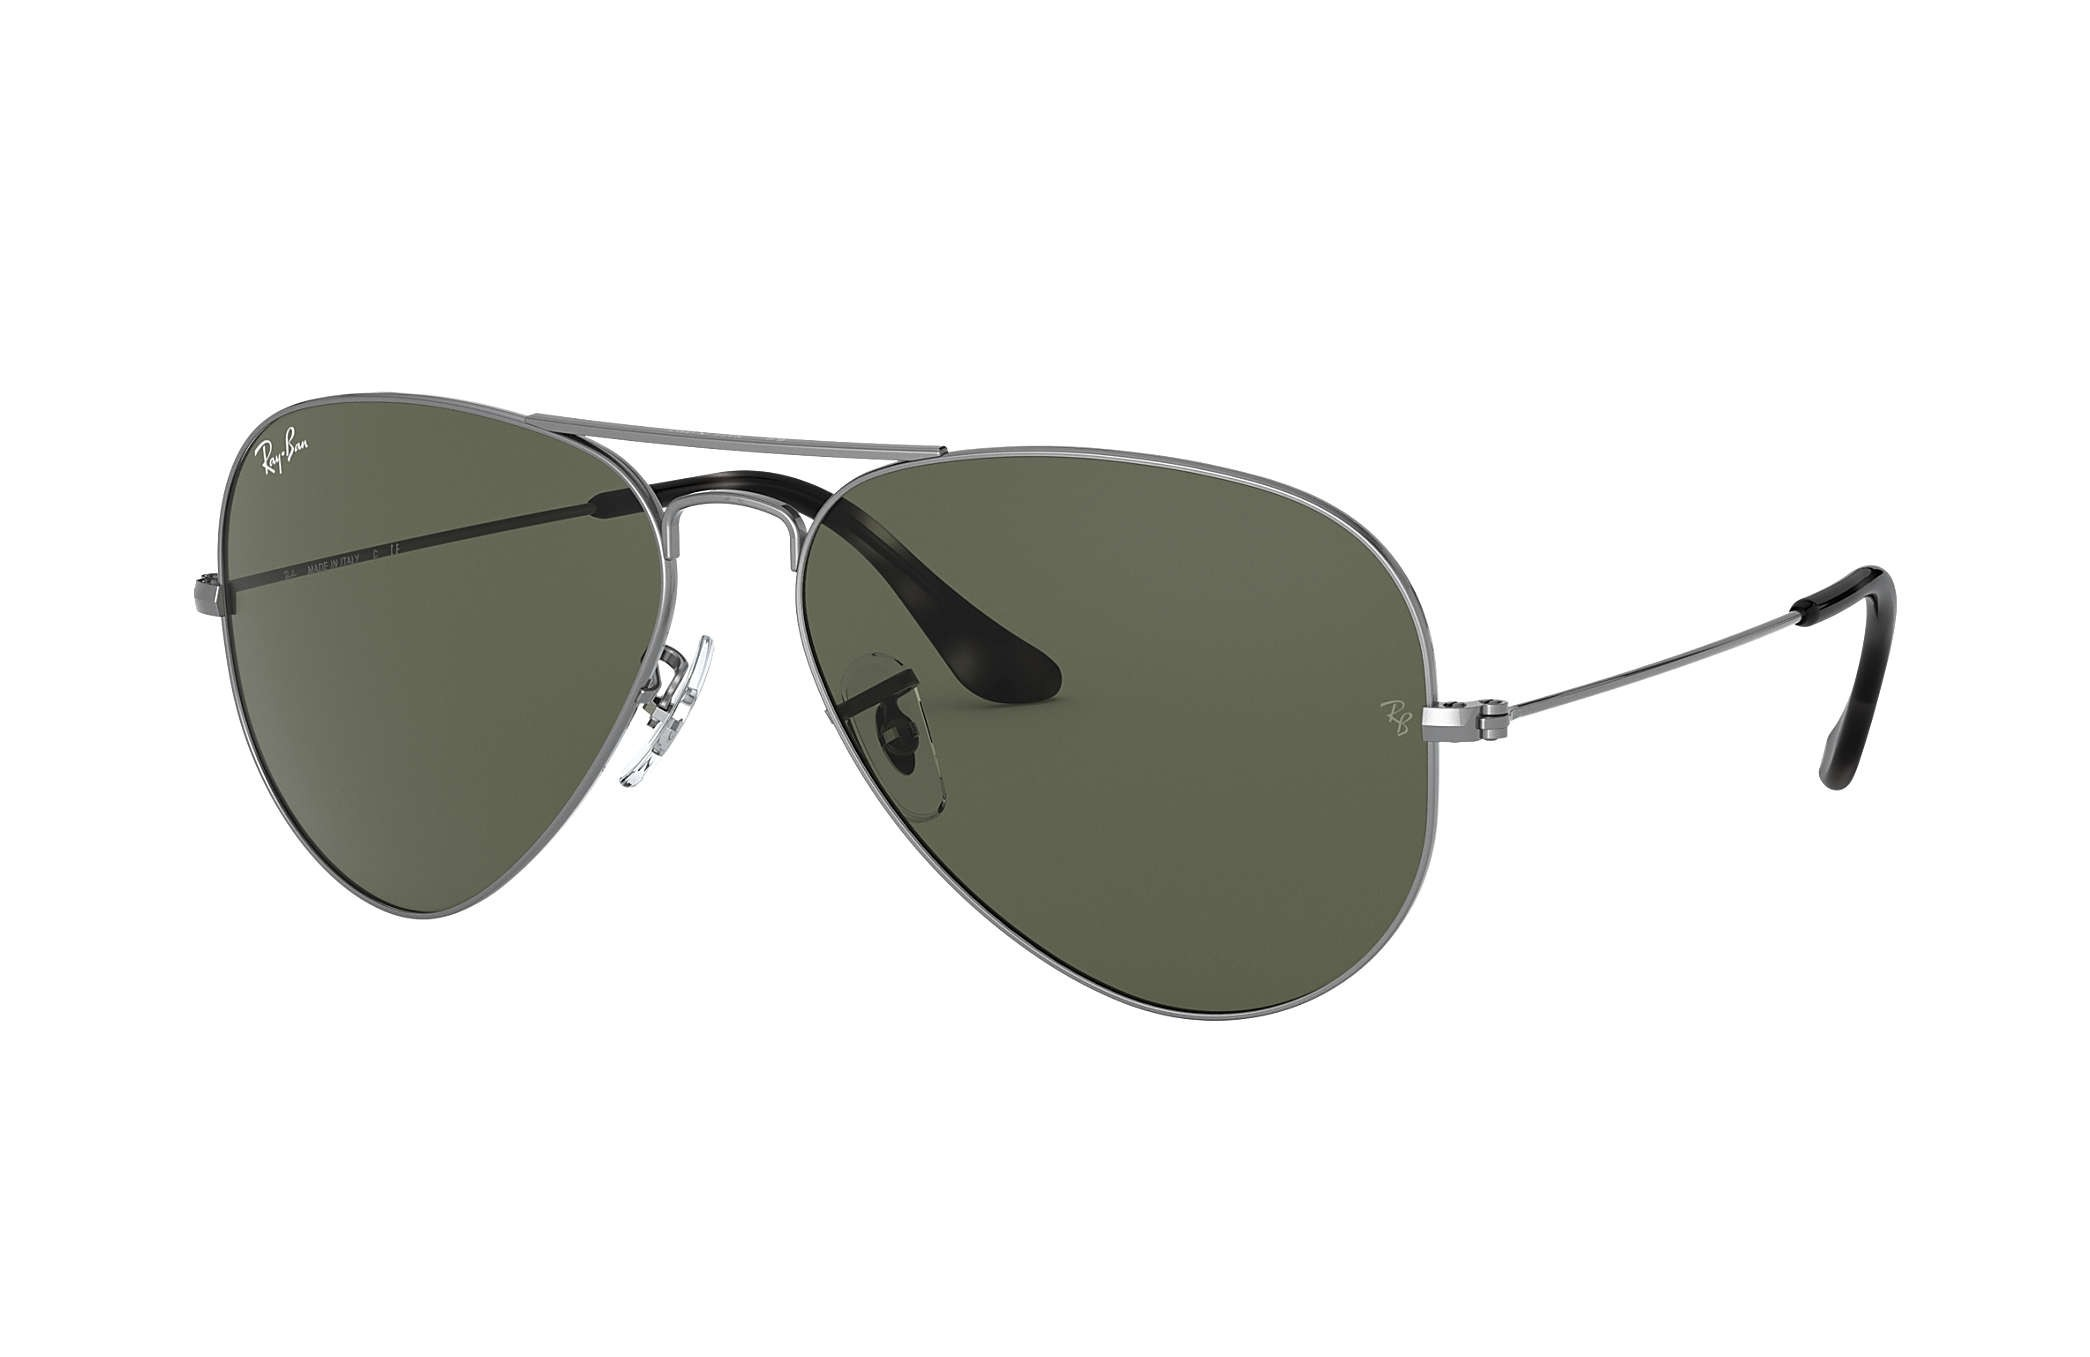 ÓCULOS DE SOL RAY BAN RB 3025 AVIATOR LARGE METAL 9190/31 62 14 140 3N